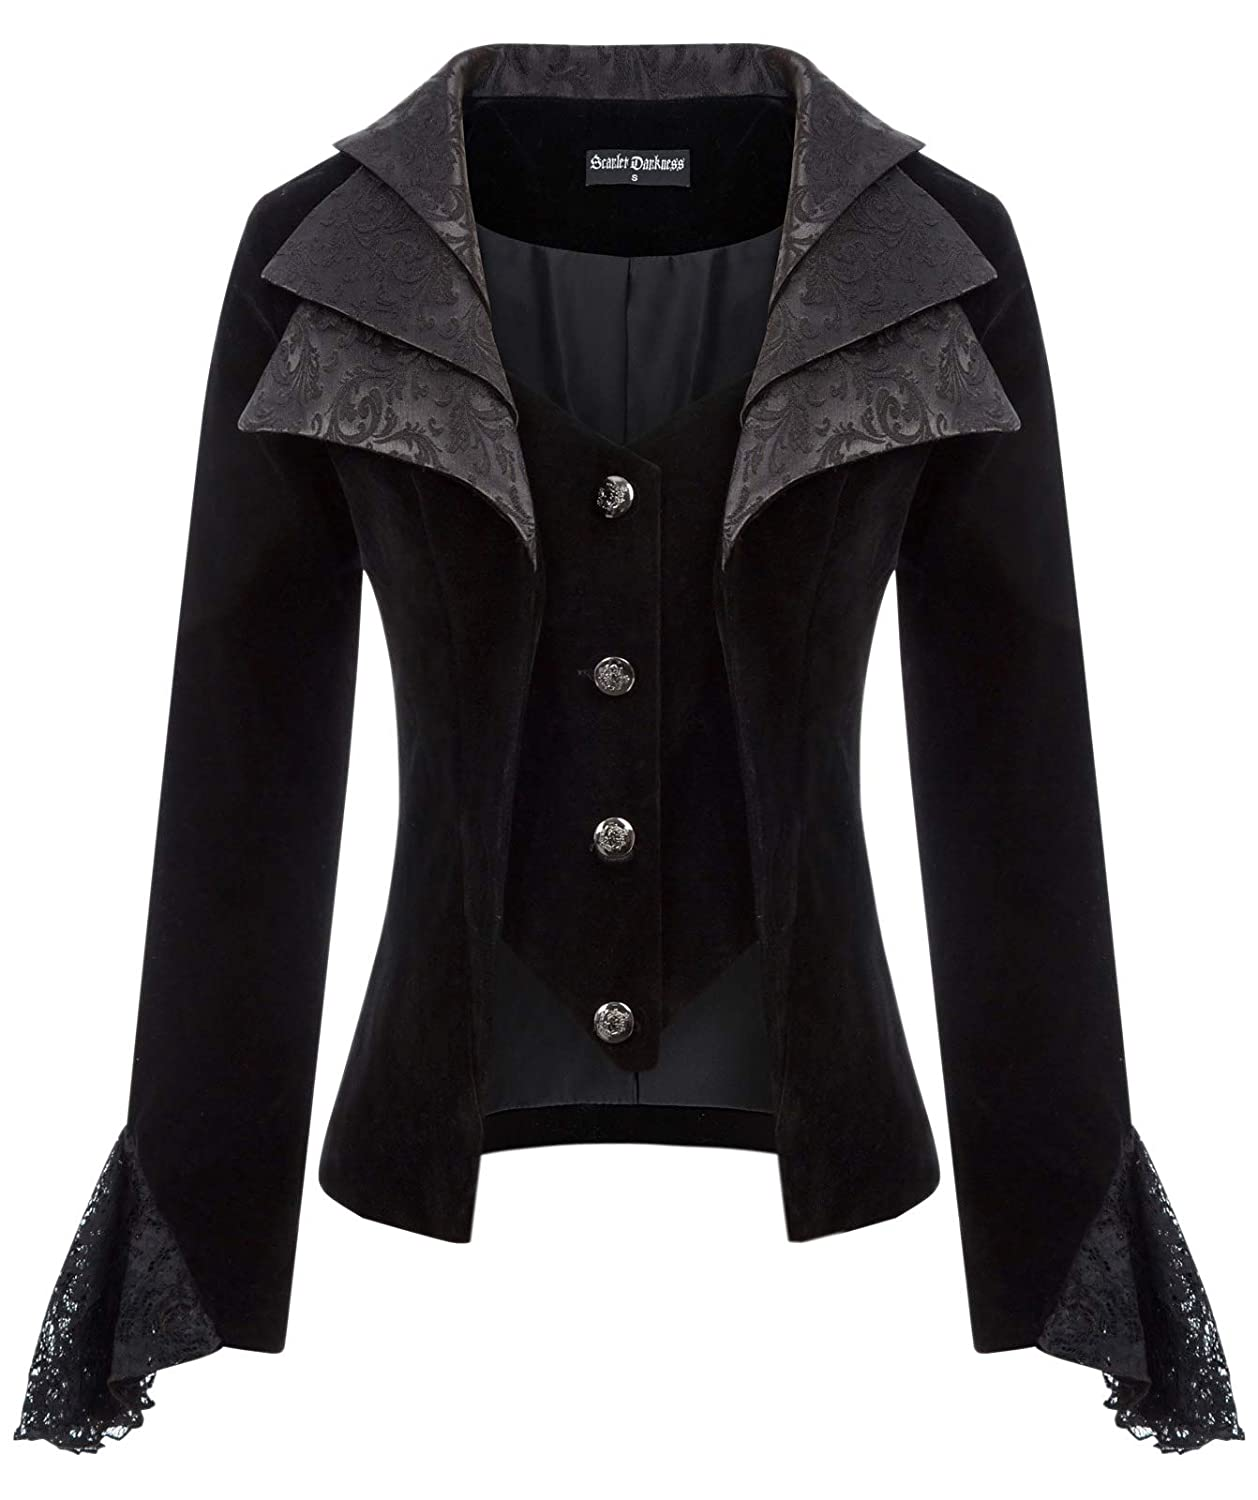 Steampunk Tops | Blouses, Shirts Womens Gothic Vampire Jacket Lapel Collar Coat Steampunk Long Sleeve Costume Top $37.99 AT vintagedancer.com